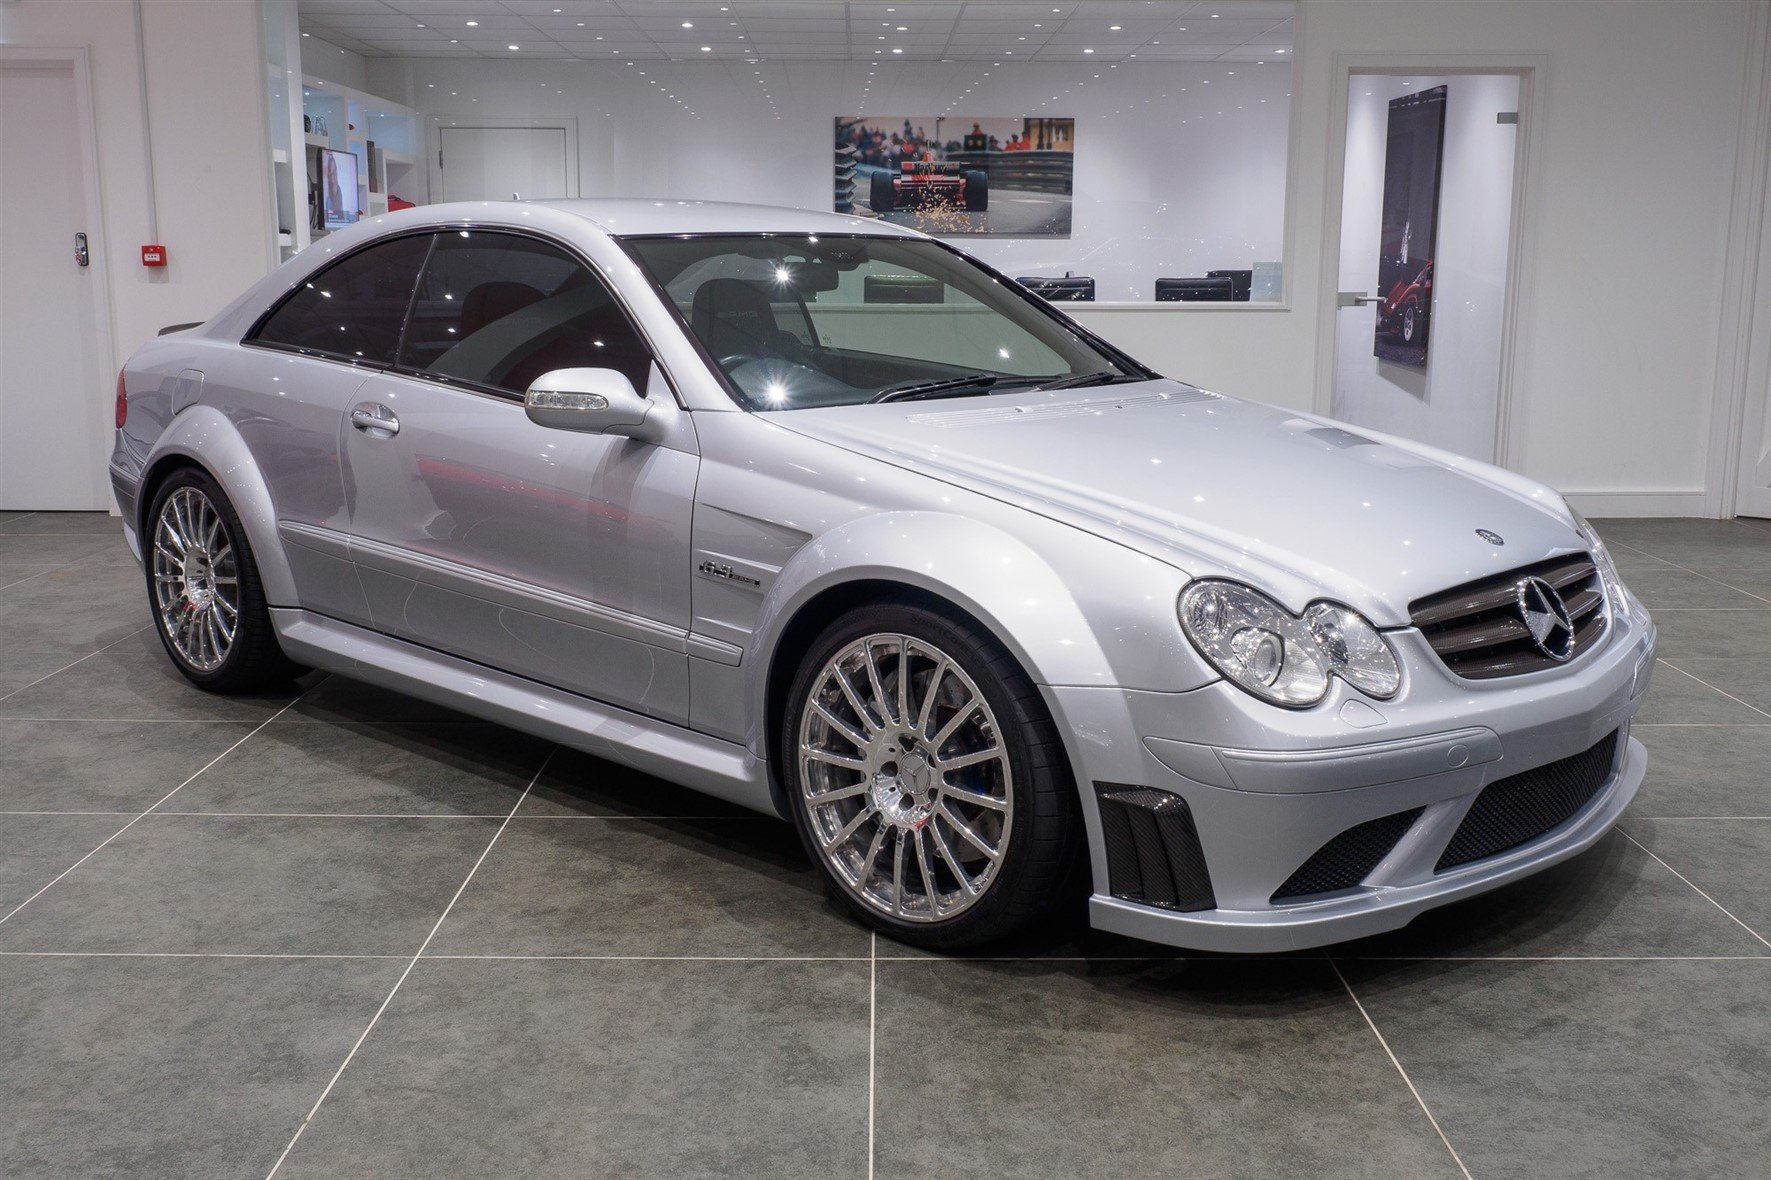 2008 Mercedes CLK63 AMG Black Series / 1 of 120 Worldwide For Sale (picture 1 of 6)